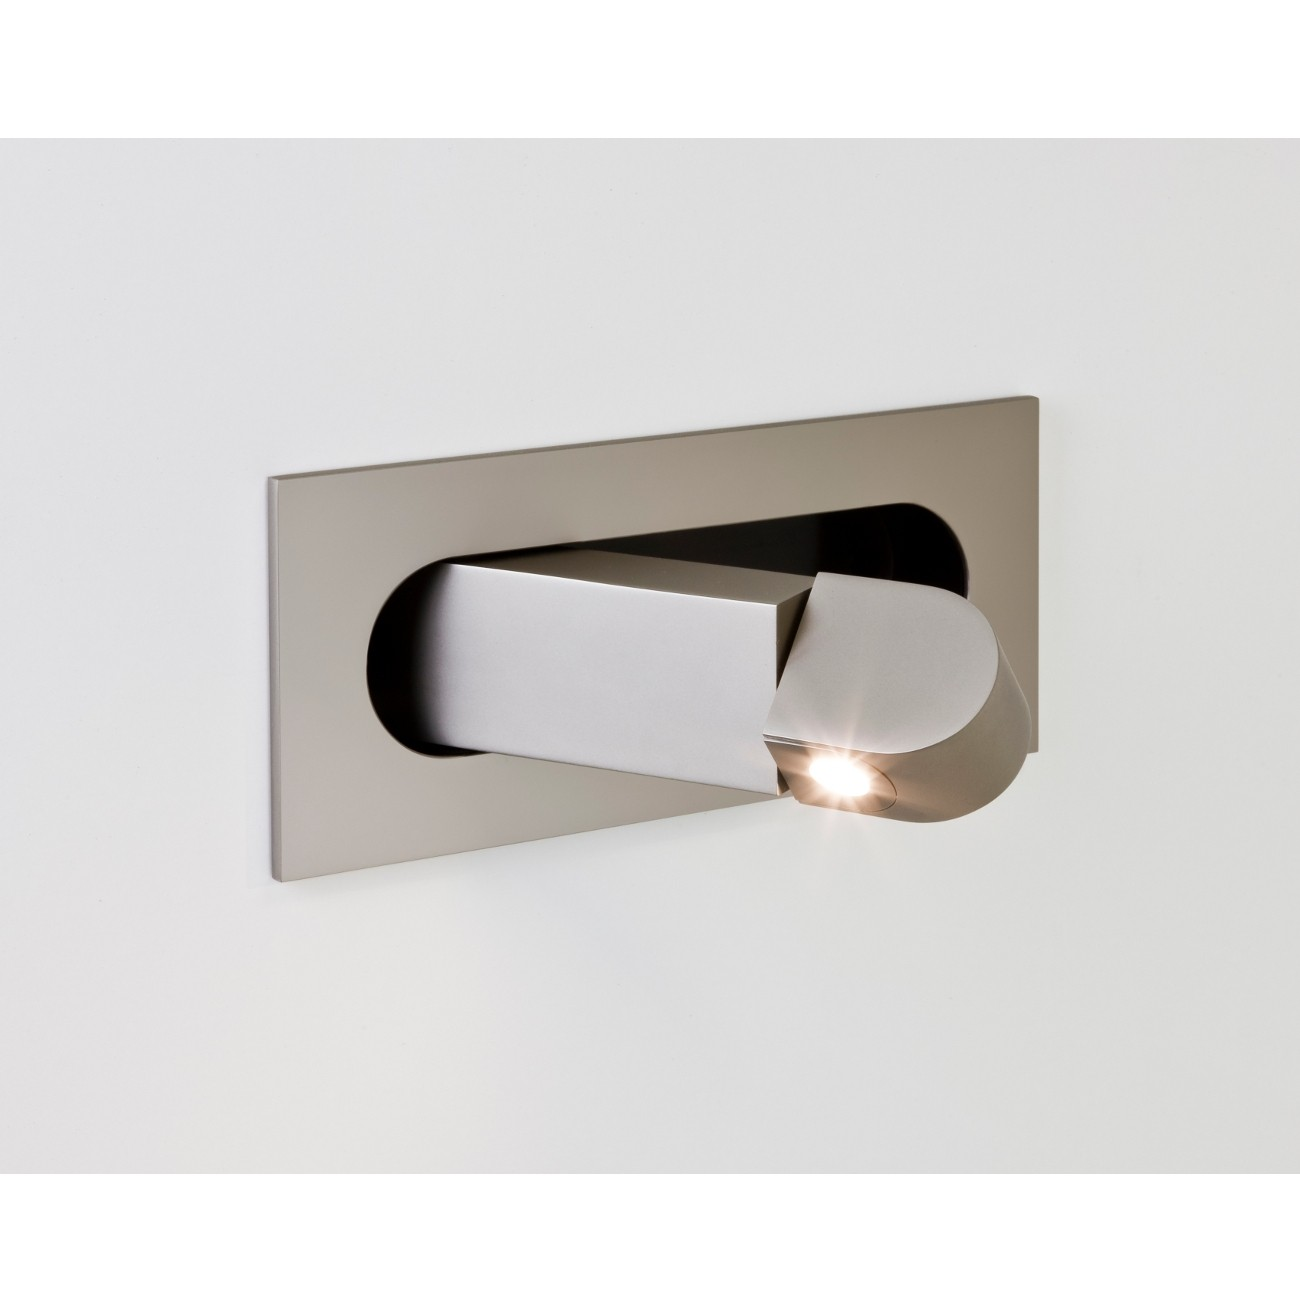 LED-Leseleuchte DIGIT Nickel matt